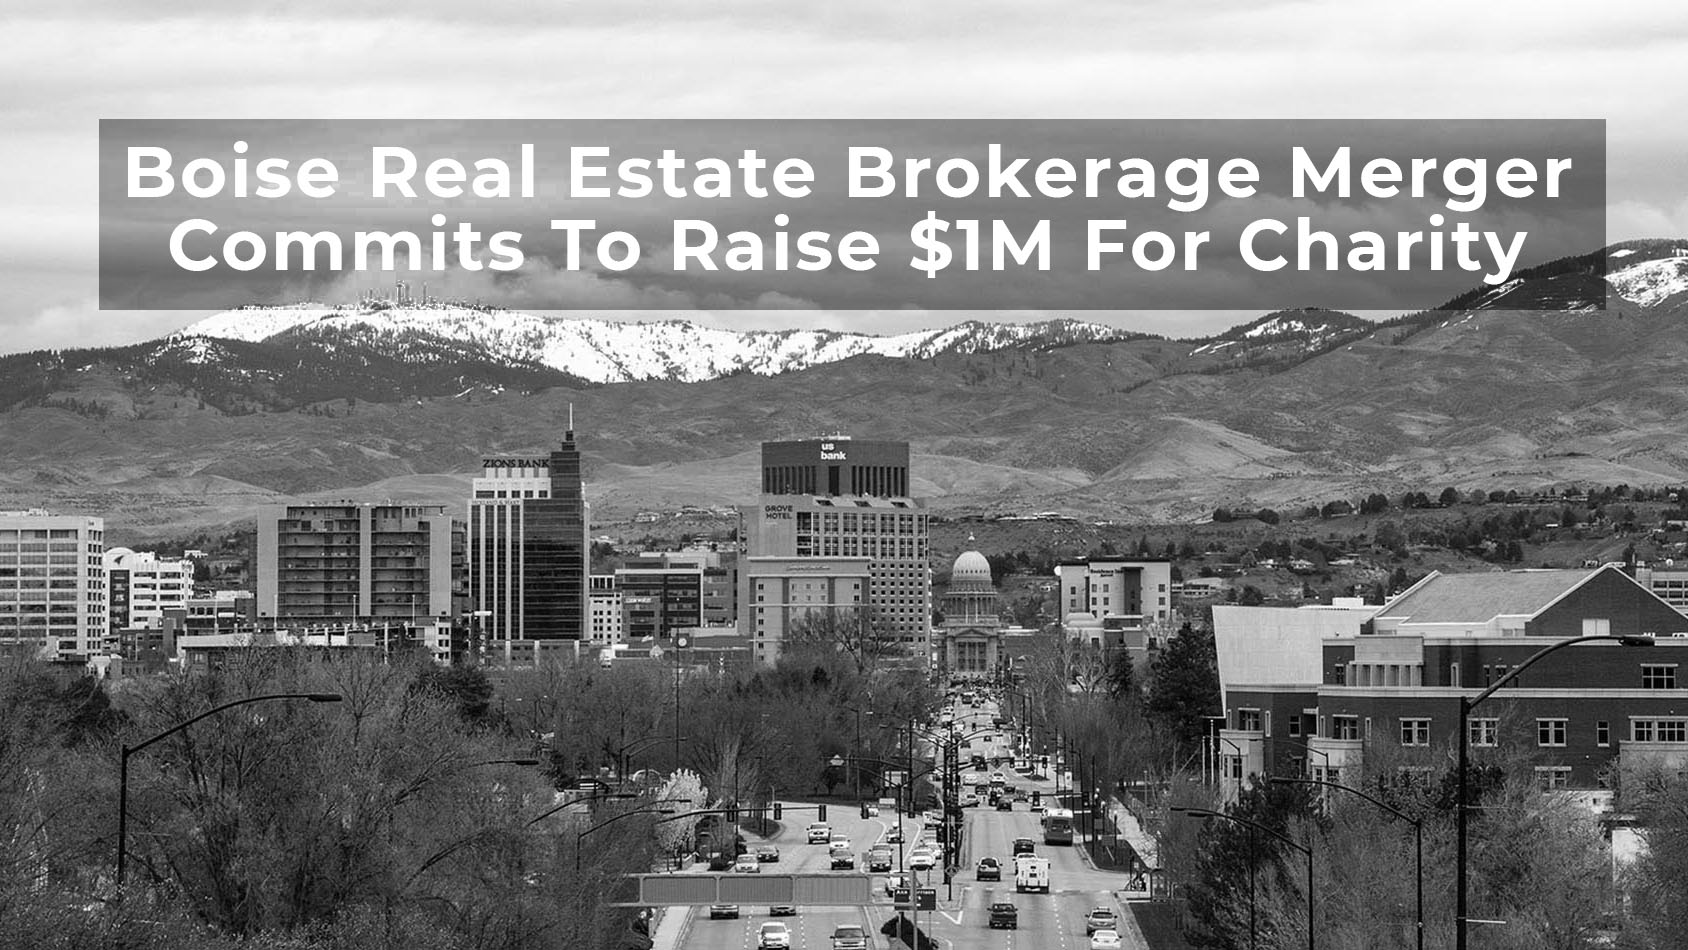 Boise Real Estate Brokerage Merger Commits to Raise $1M For Charity